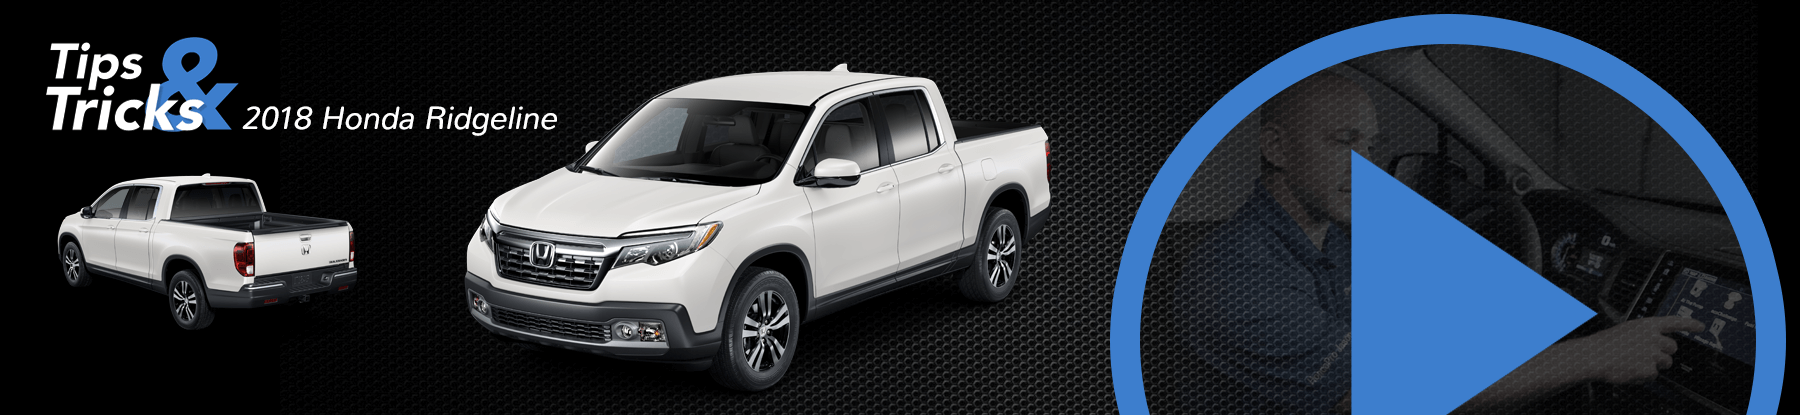 2018 Honda Ridgeline Tips and Tricks Banner